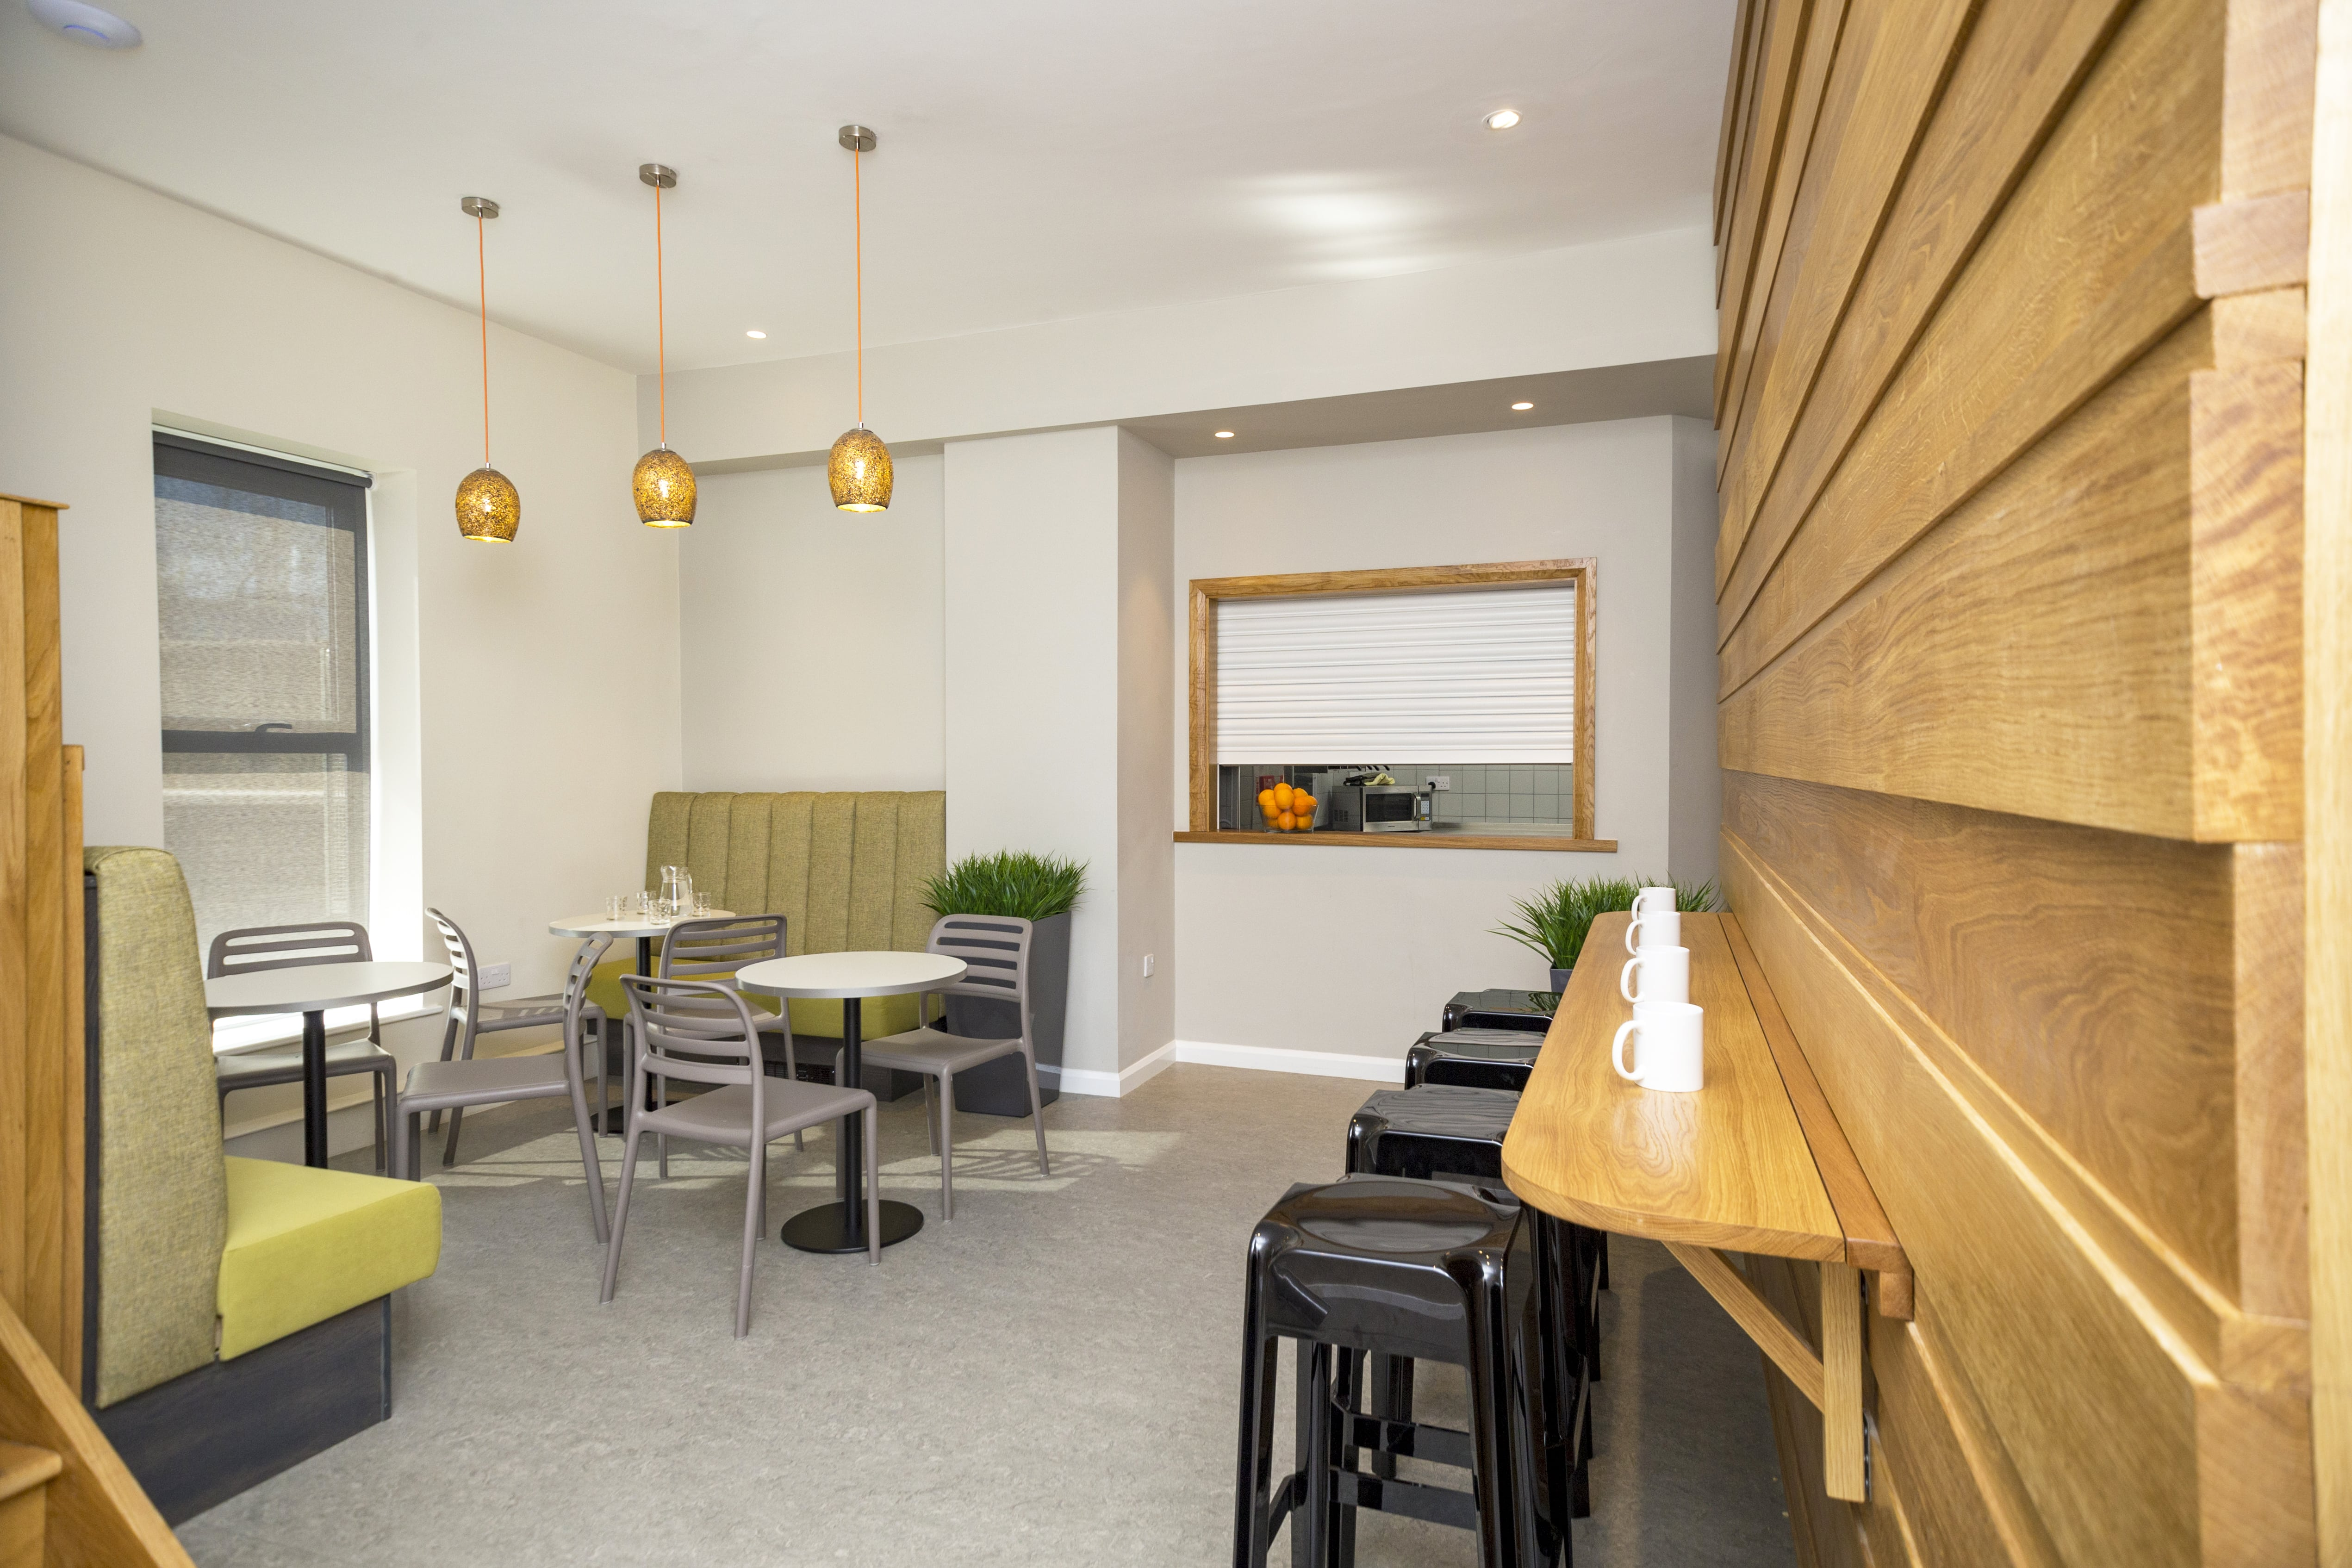 Reach Beyond Banquette Seating